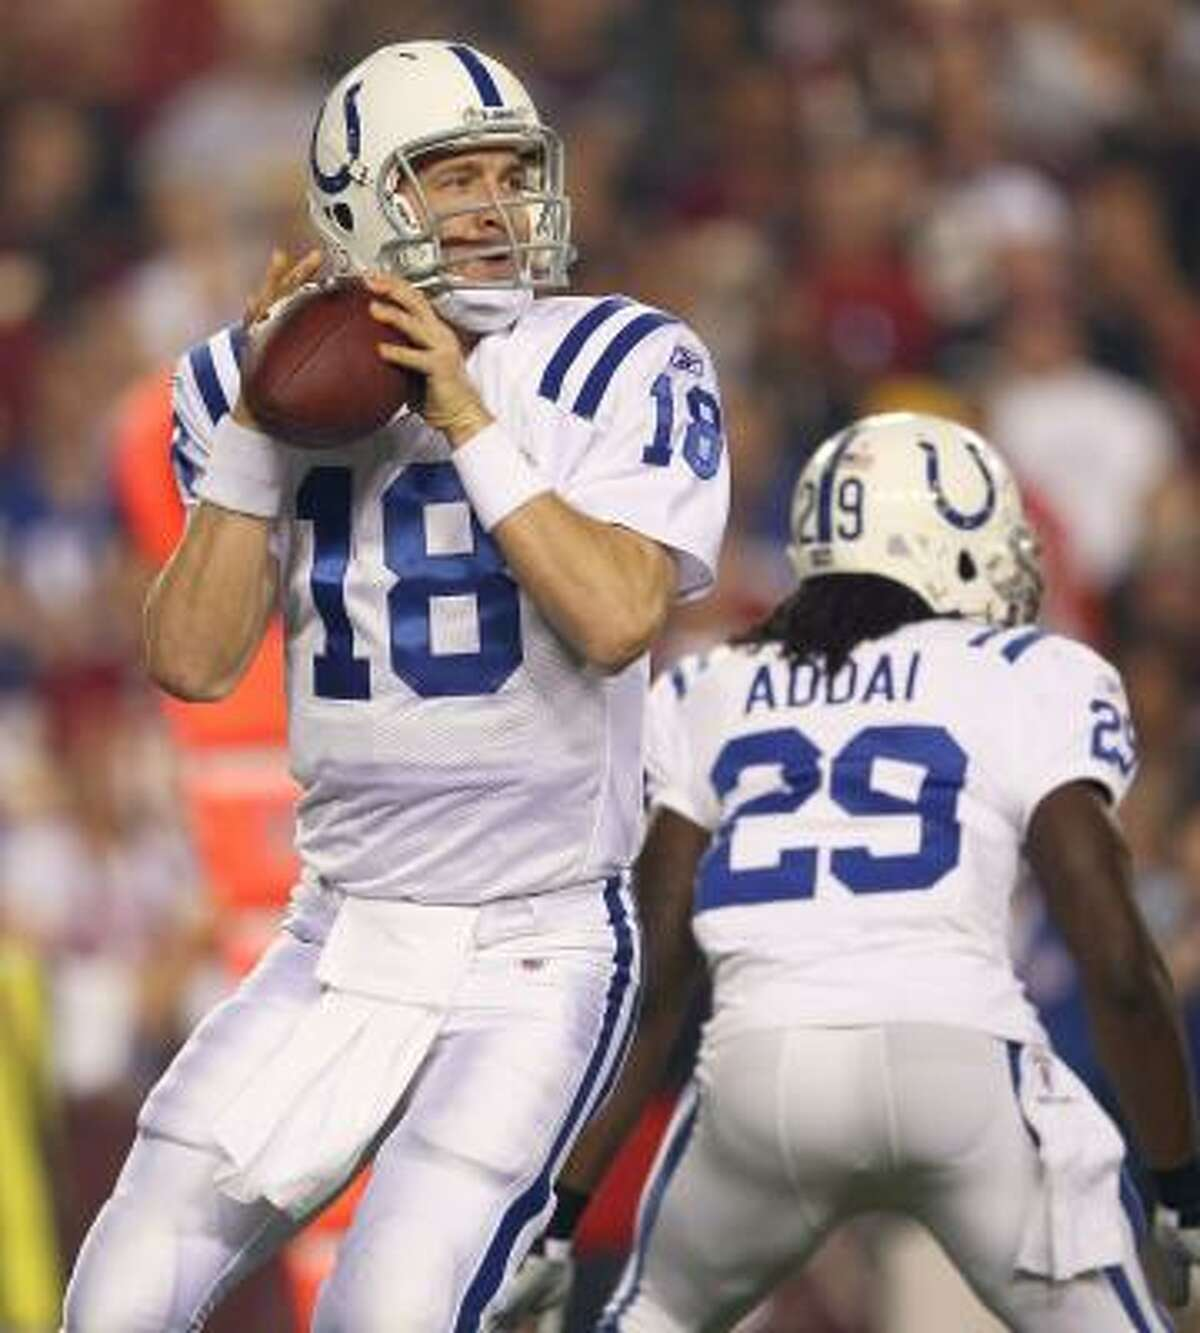 Oct. 17: Colts 27, Redskins 24 Colts quarterback Peyton Manning threw for 307 yards and two touchdowns.